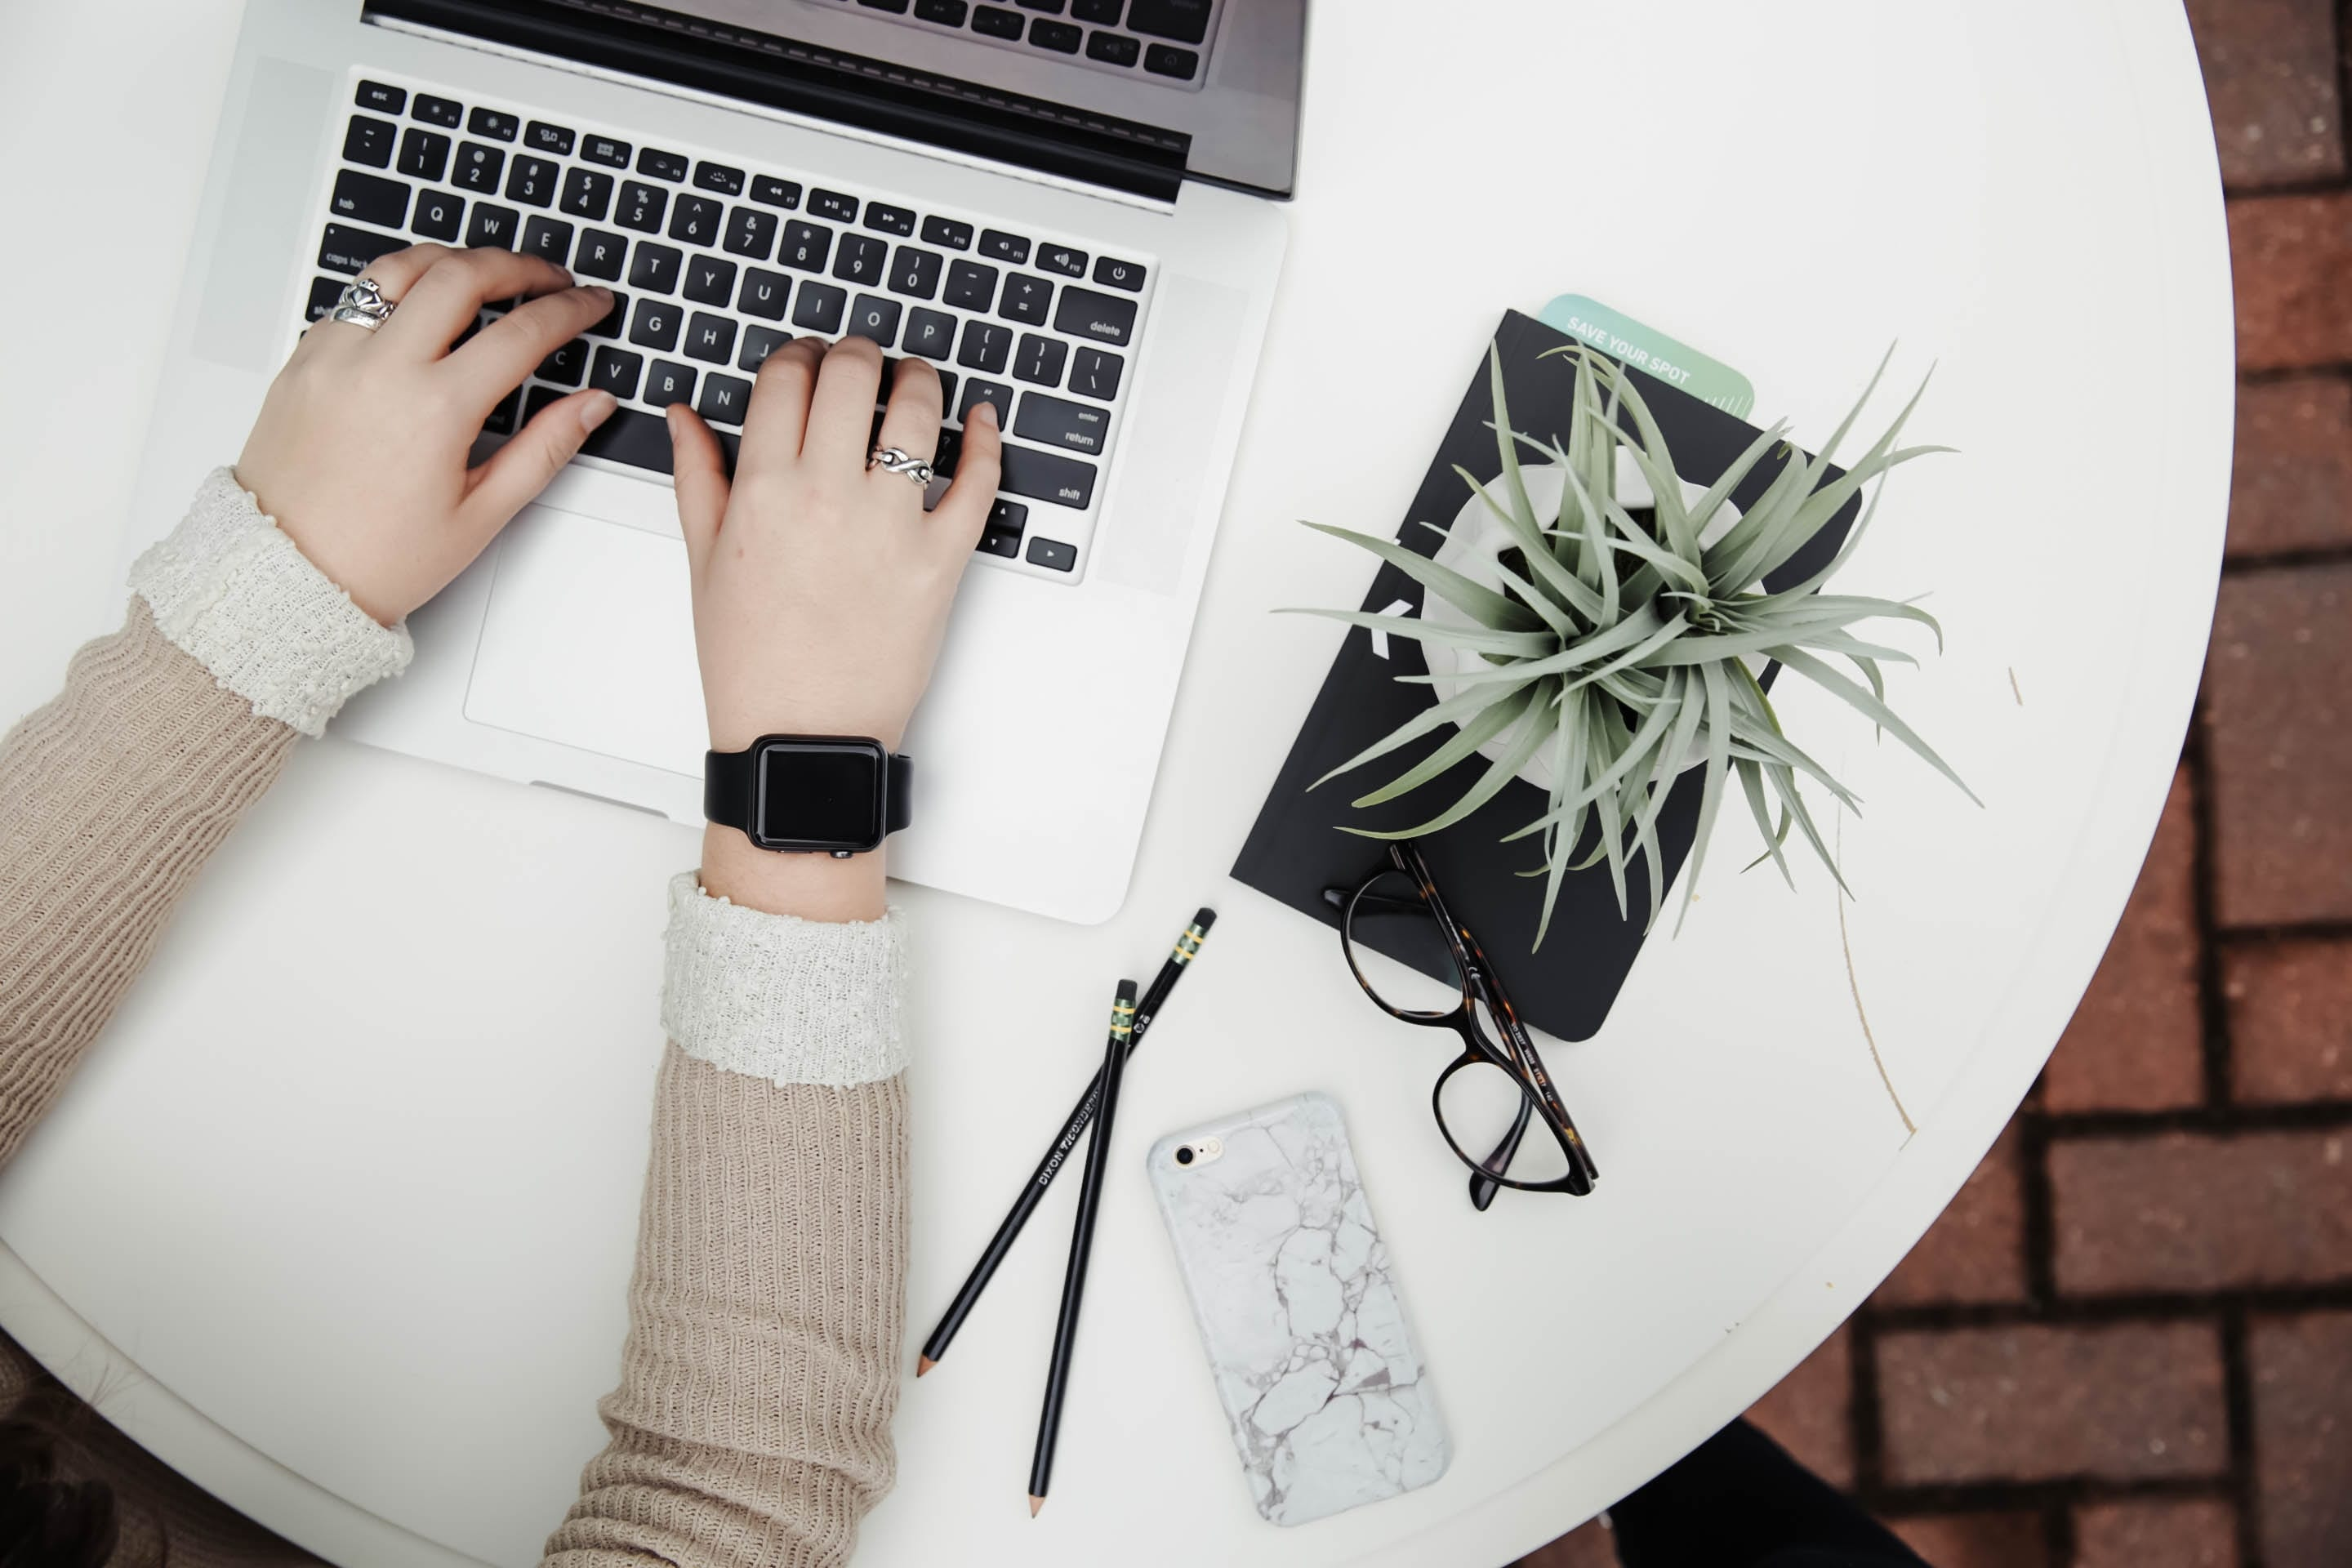 Woman at circular table working on a laptop with a plant, eyeglasses, smartphone and pencils nearby; image by Corinne Kutz; via Unsplash.com.